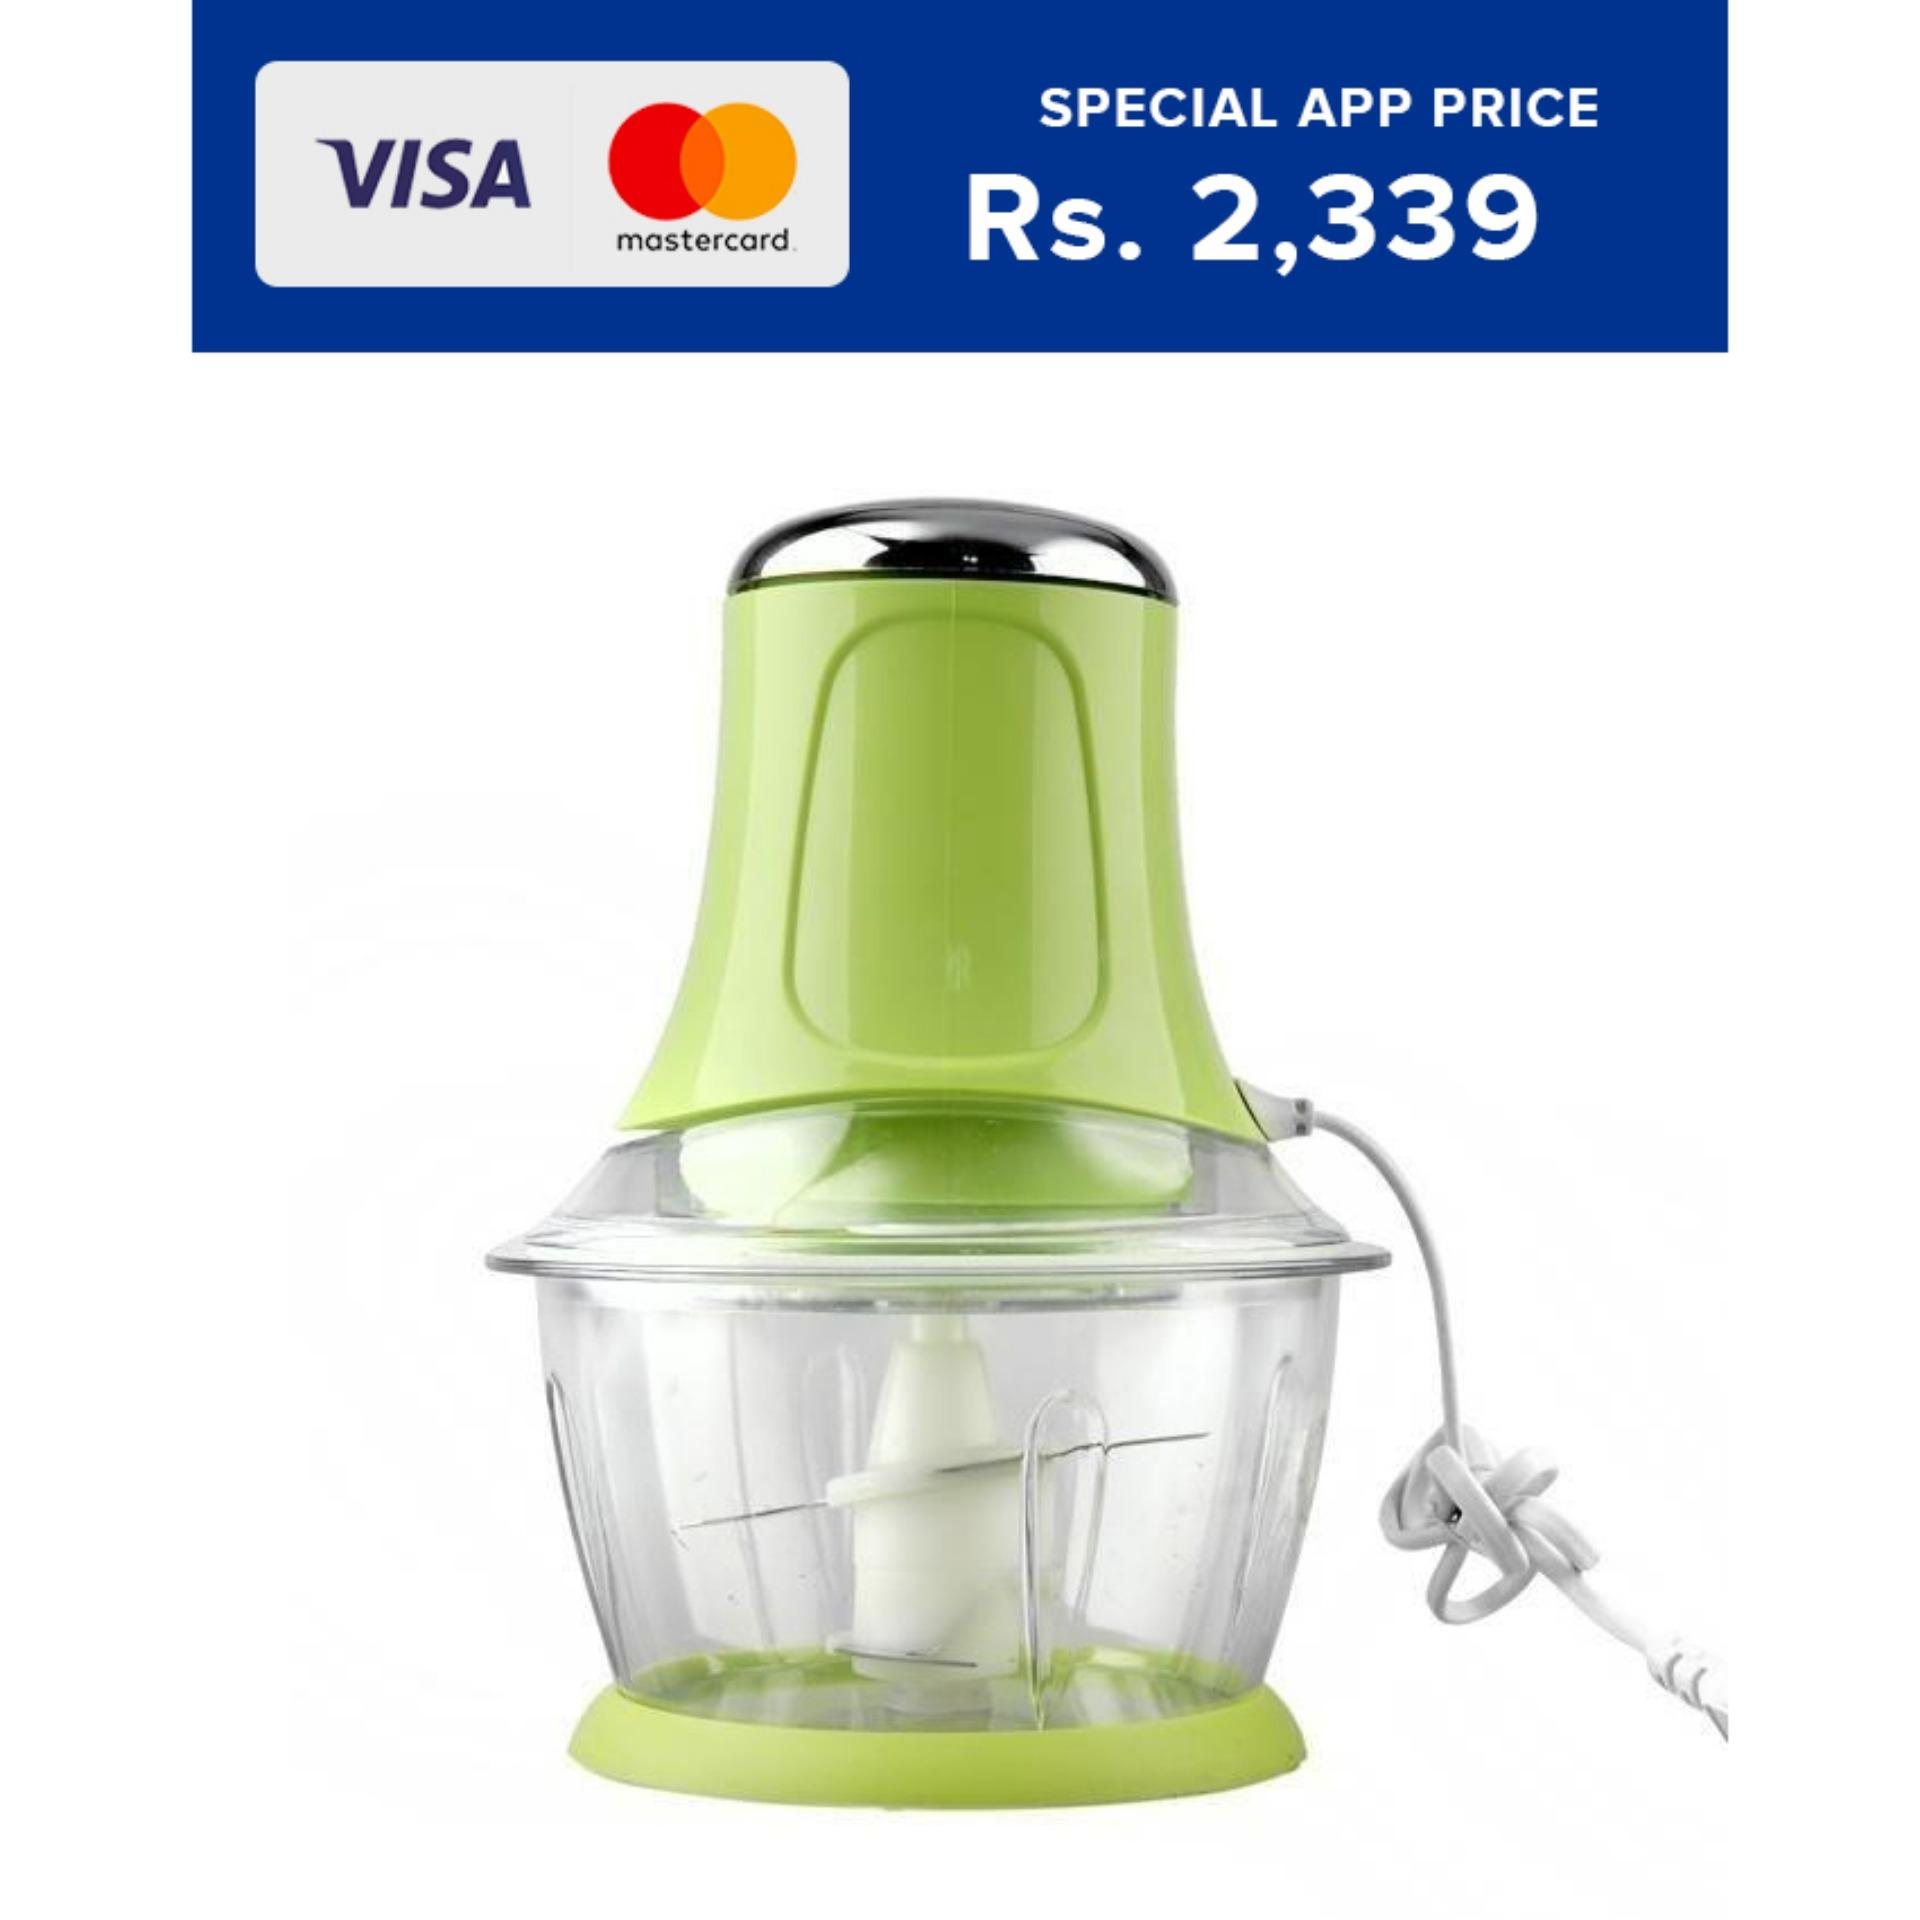 Green Mini Multifunctional Meat Grinder